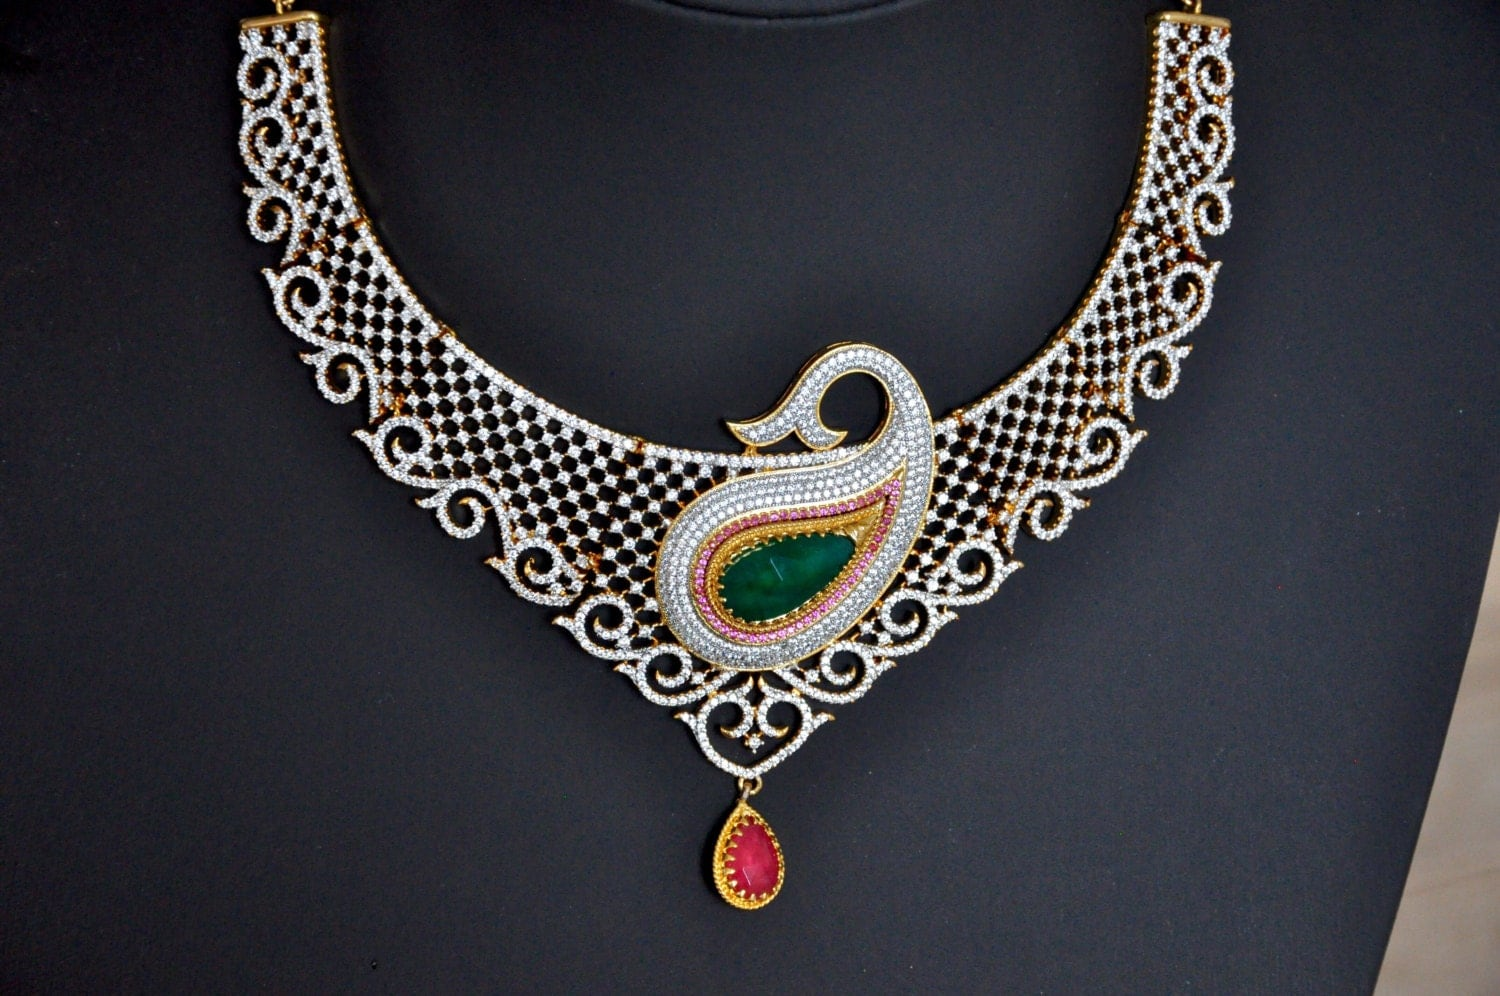 Sale 50% Off  American Diamond Bridal Indian Necklace Set With Ruby And  Emerald Stones  Indian Wedding Jewelry  Indian Bridal Jewelry